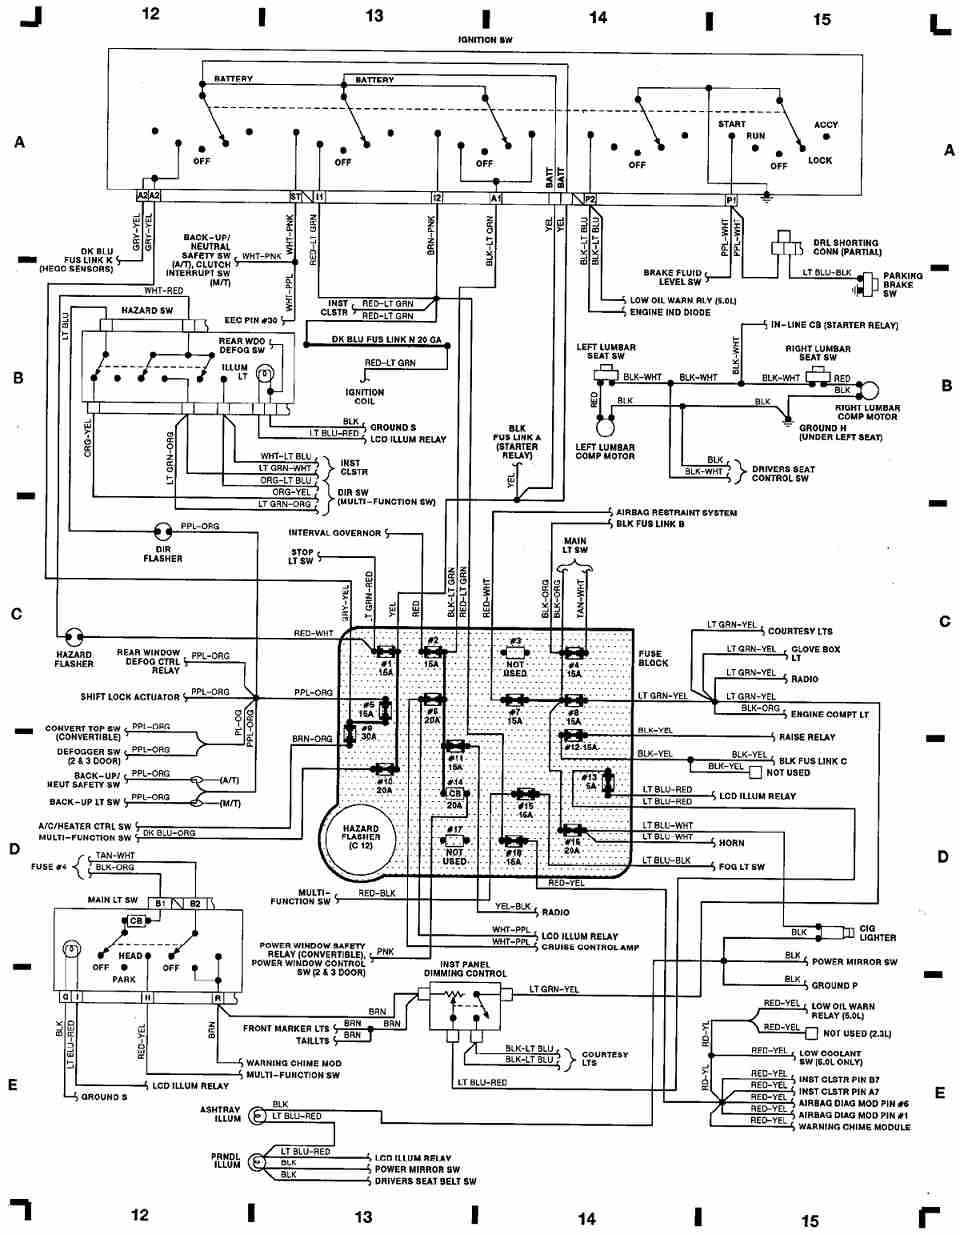 1993 mustang gt electrical wiring help needed caution pg13 rated rh allfordmustangs com 1993 mustang wiring diagram pdf 93 mustang radio wiring diagram